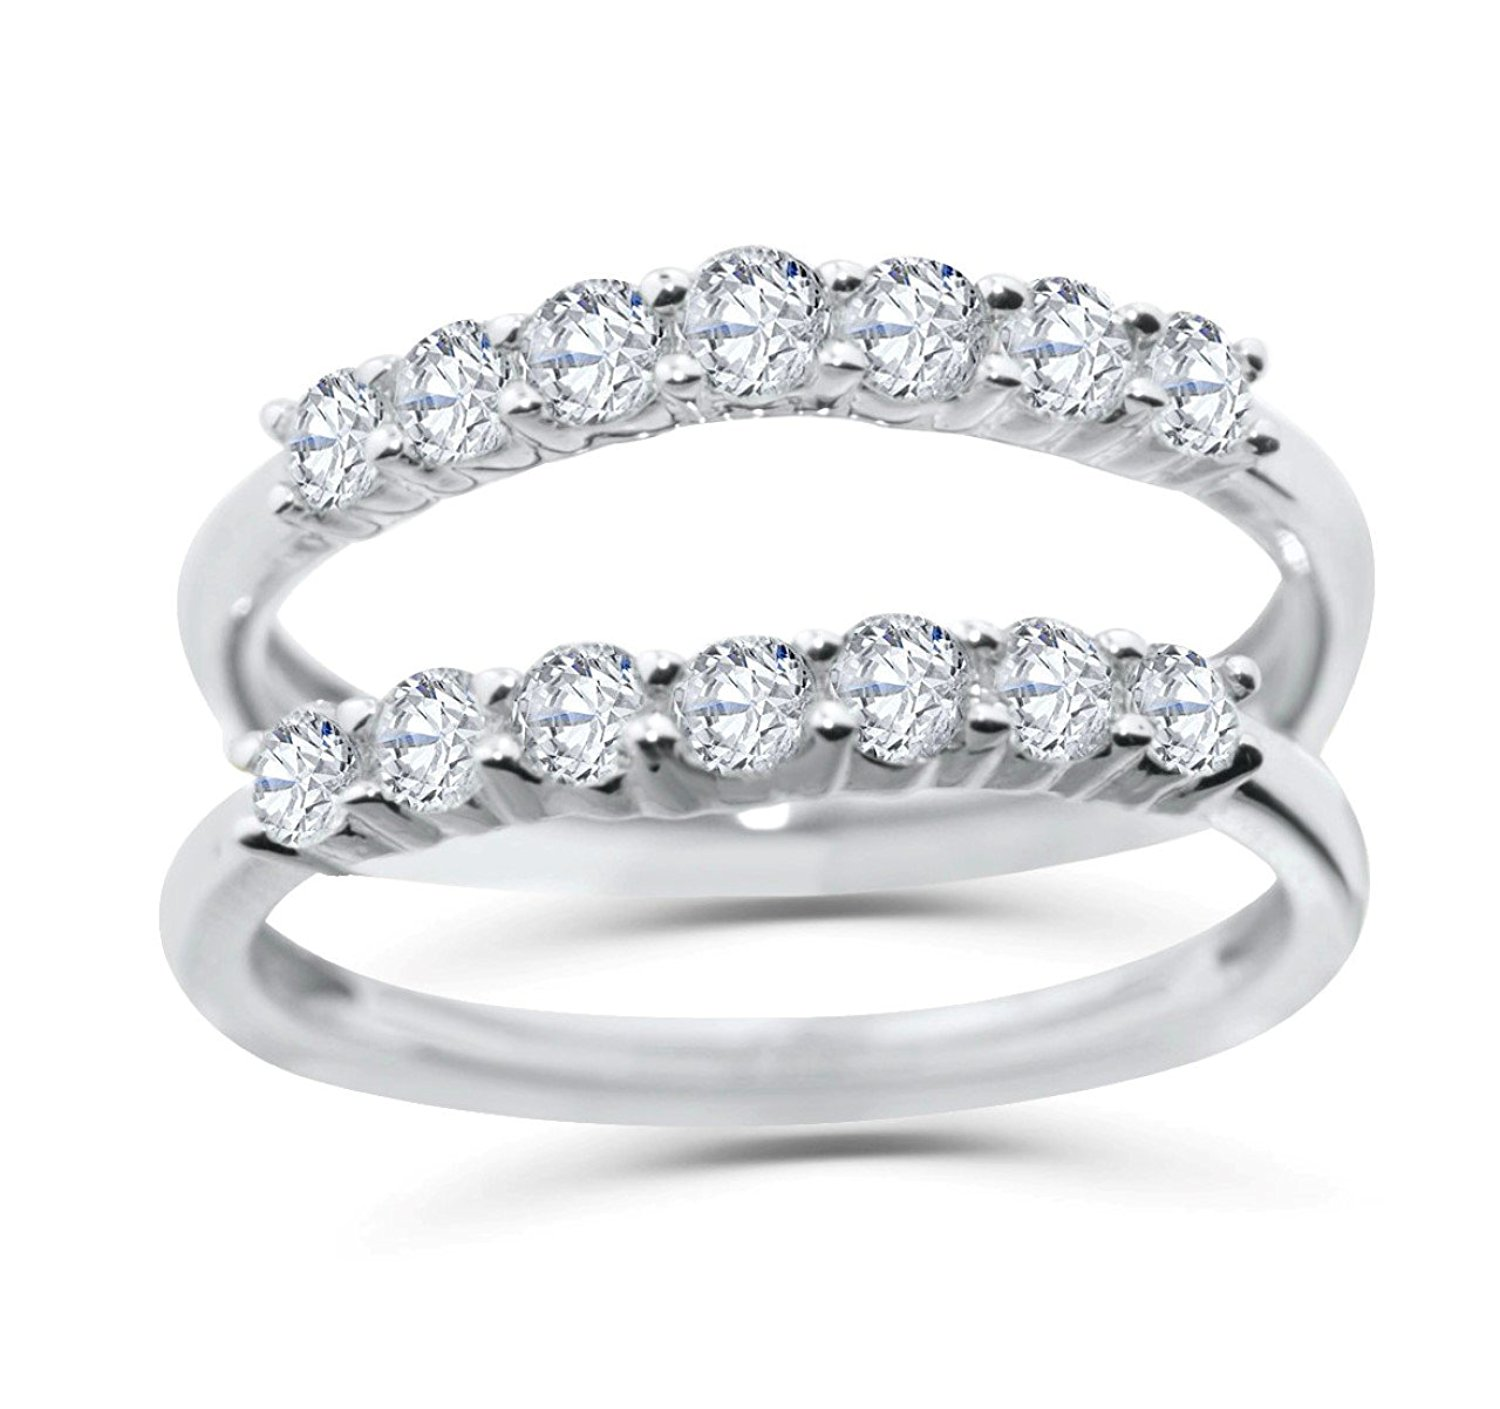 Midwest Jewellery 14K White Gold Jacket Ring Guard 3/4ctw Diamonds Wedding Band